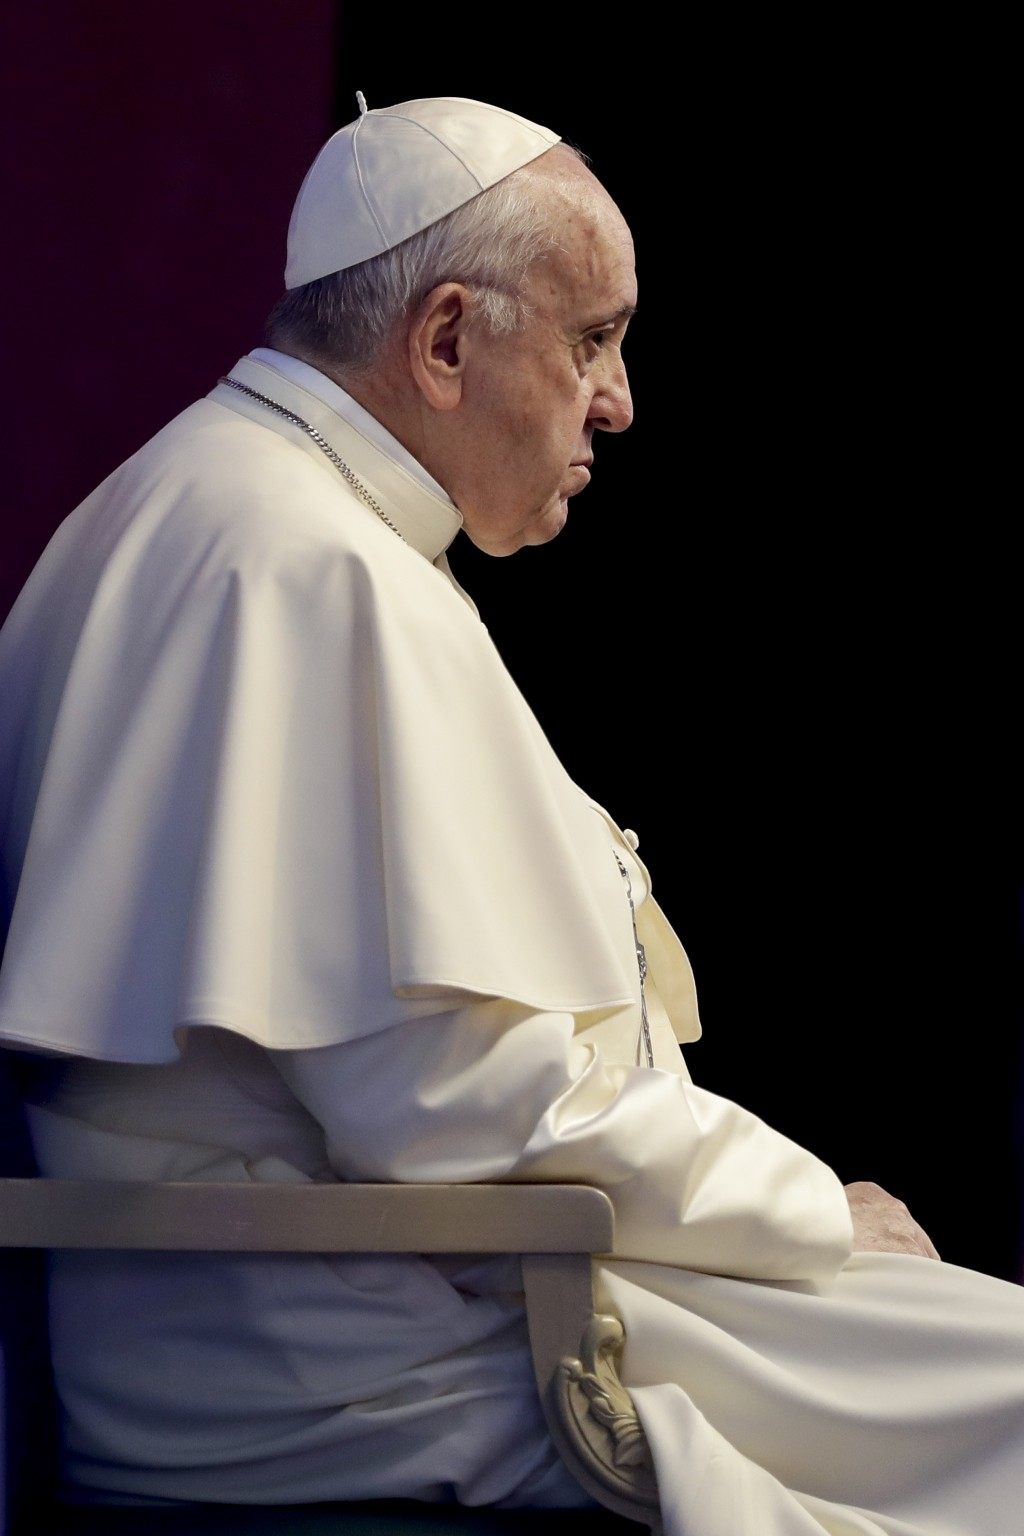 Pope Francis attends the Governing Council of the International Fund for Agricultural Development (IFAD), a United Nations agency, in Rome, Thursday,